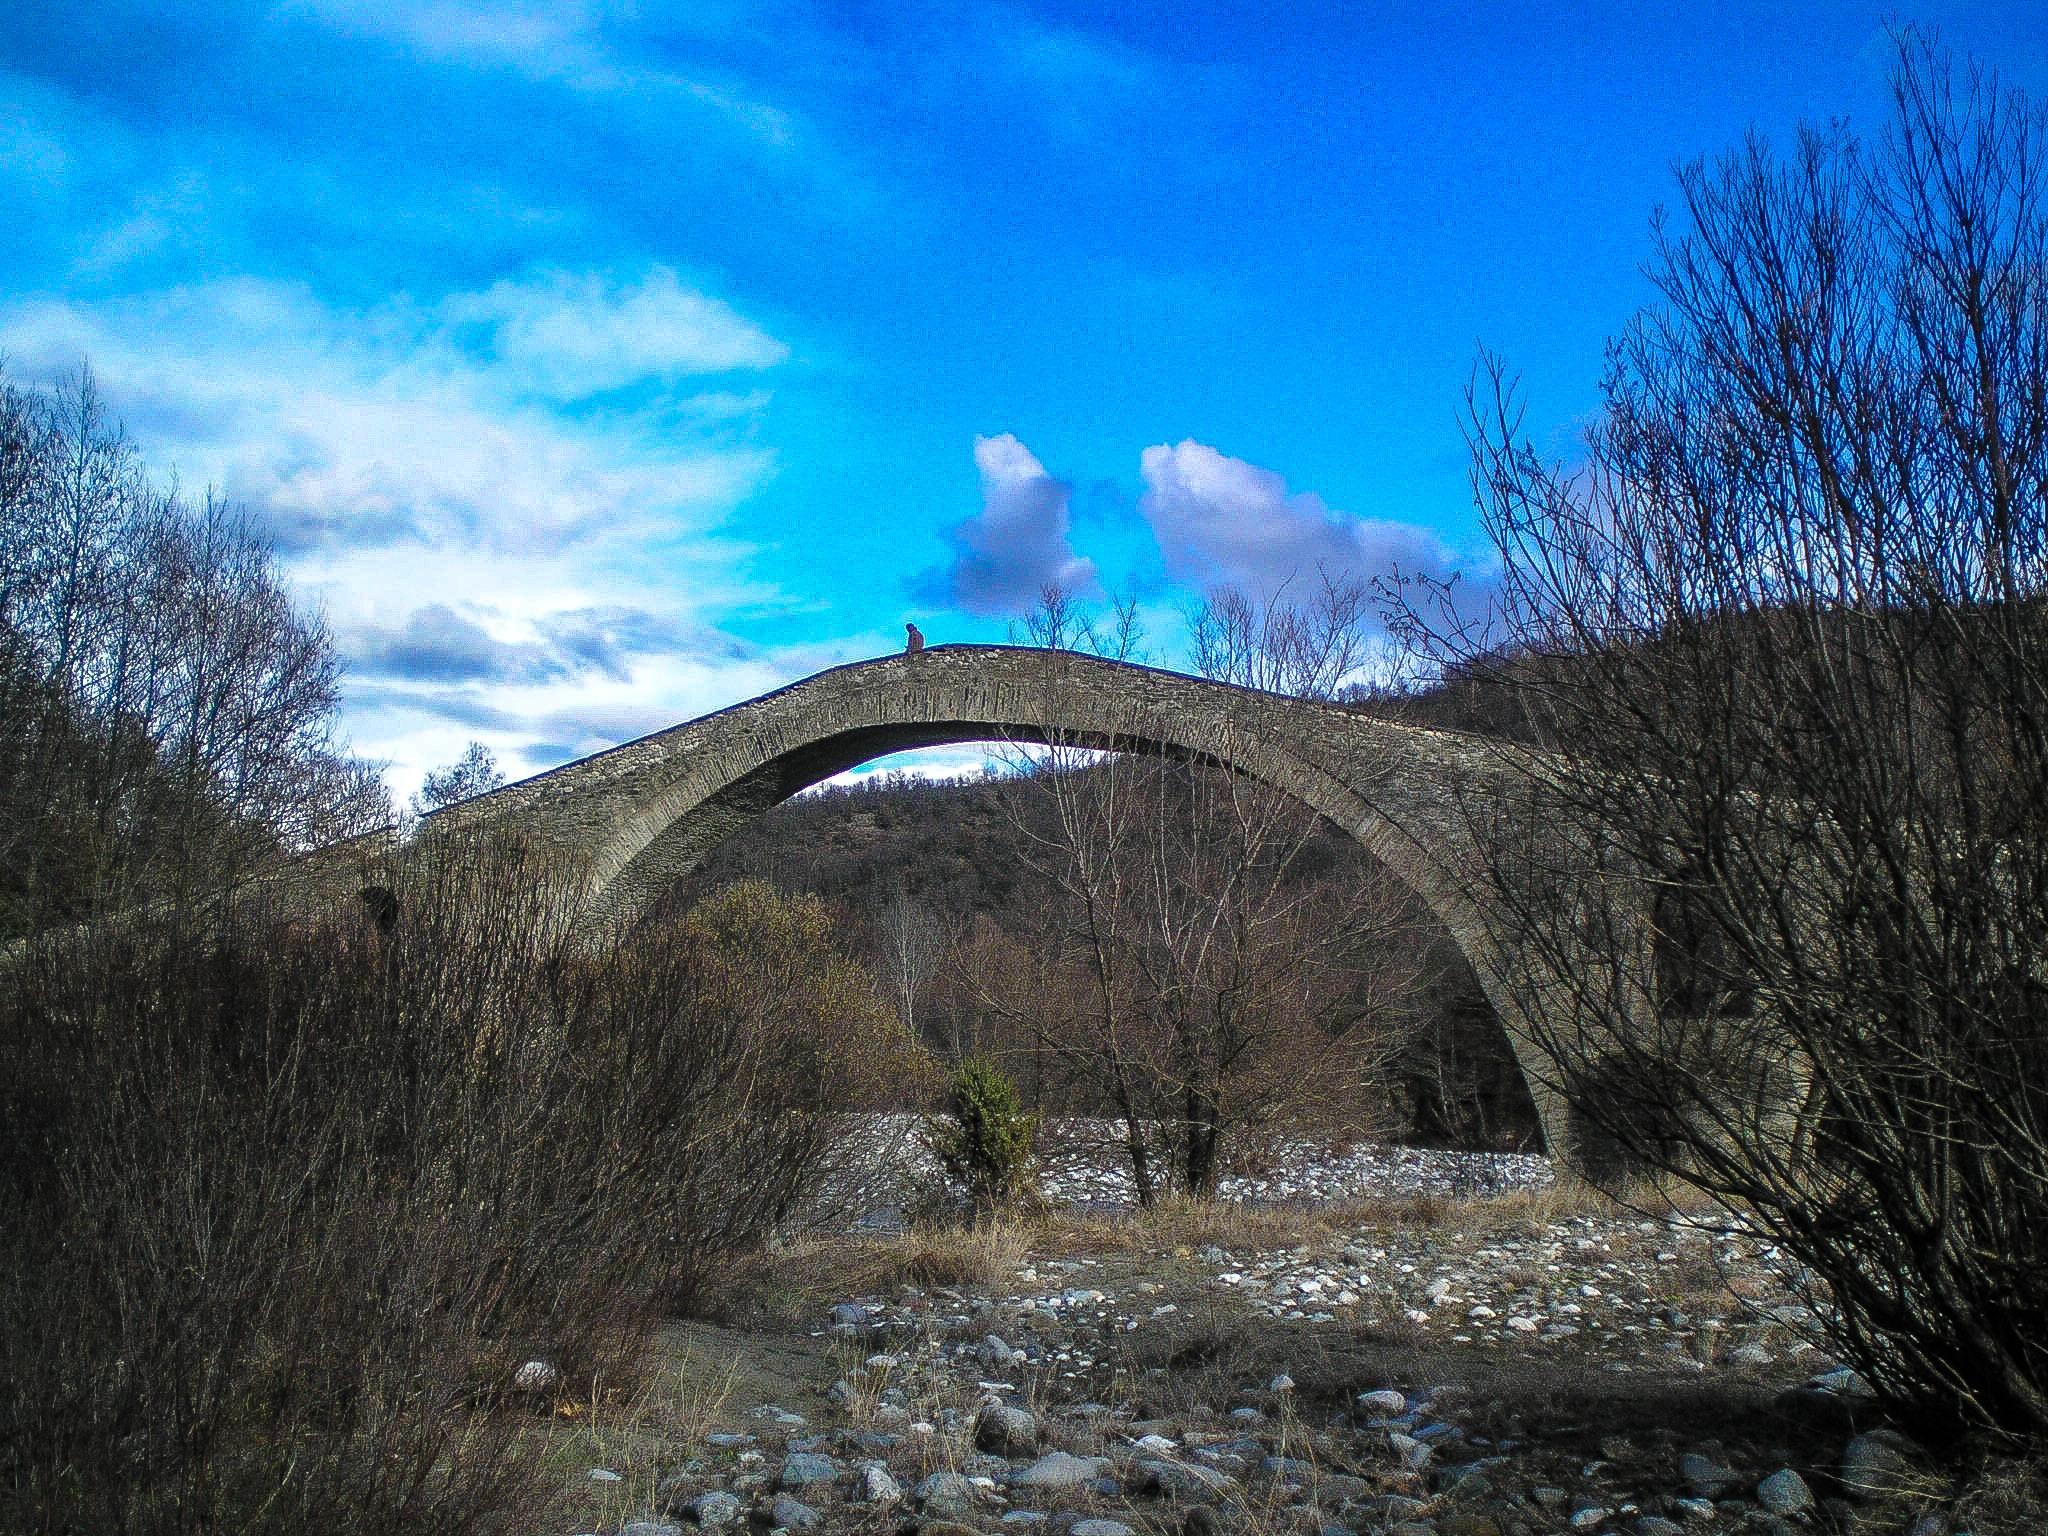 Hiking, river, stone bridge